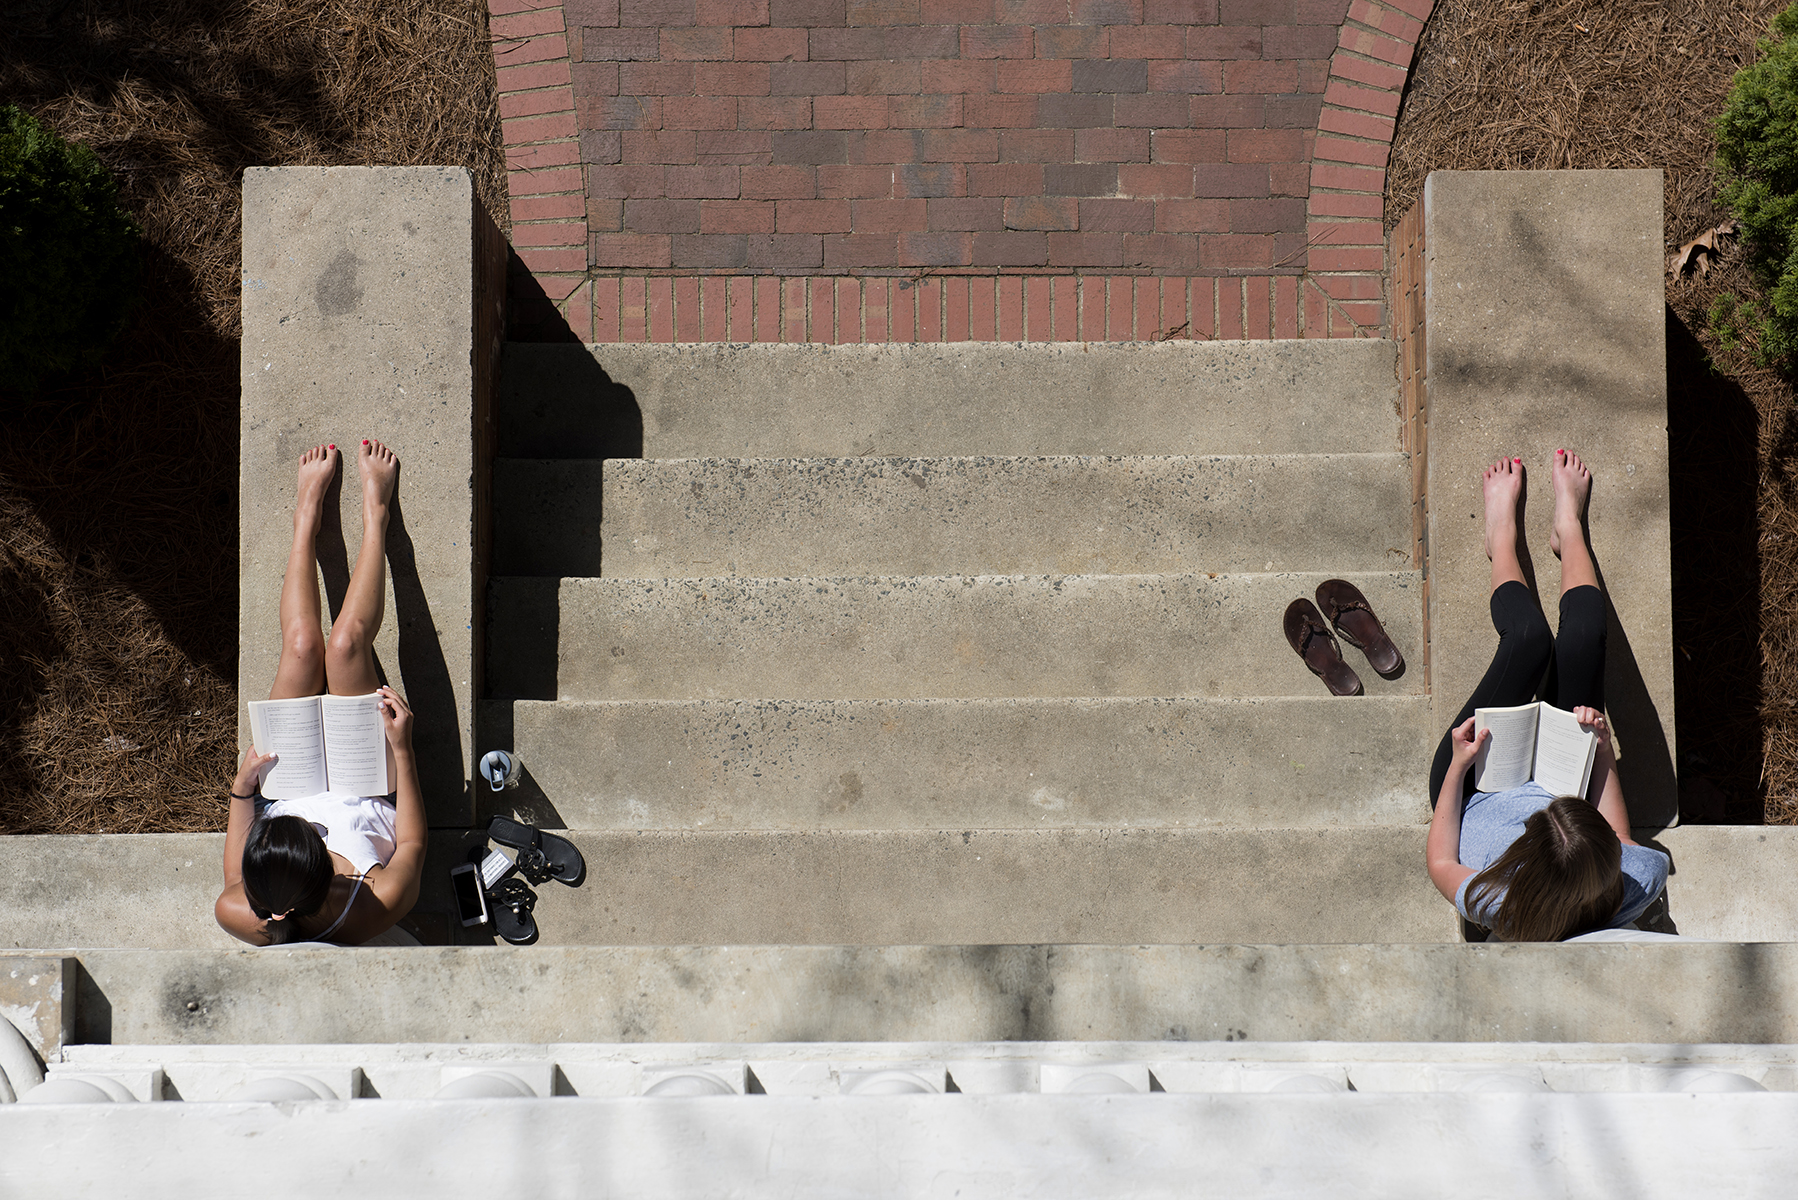 As the summer sun begins to emerge on campus, so do the bare feet of students studying outside their residence halls.